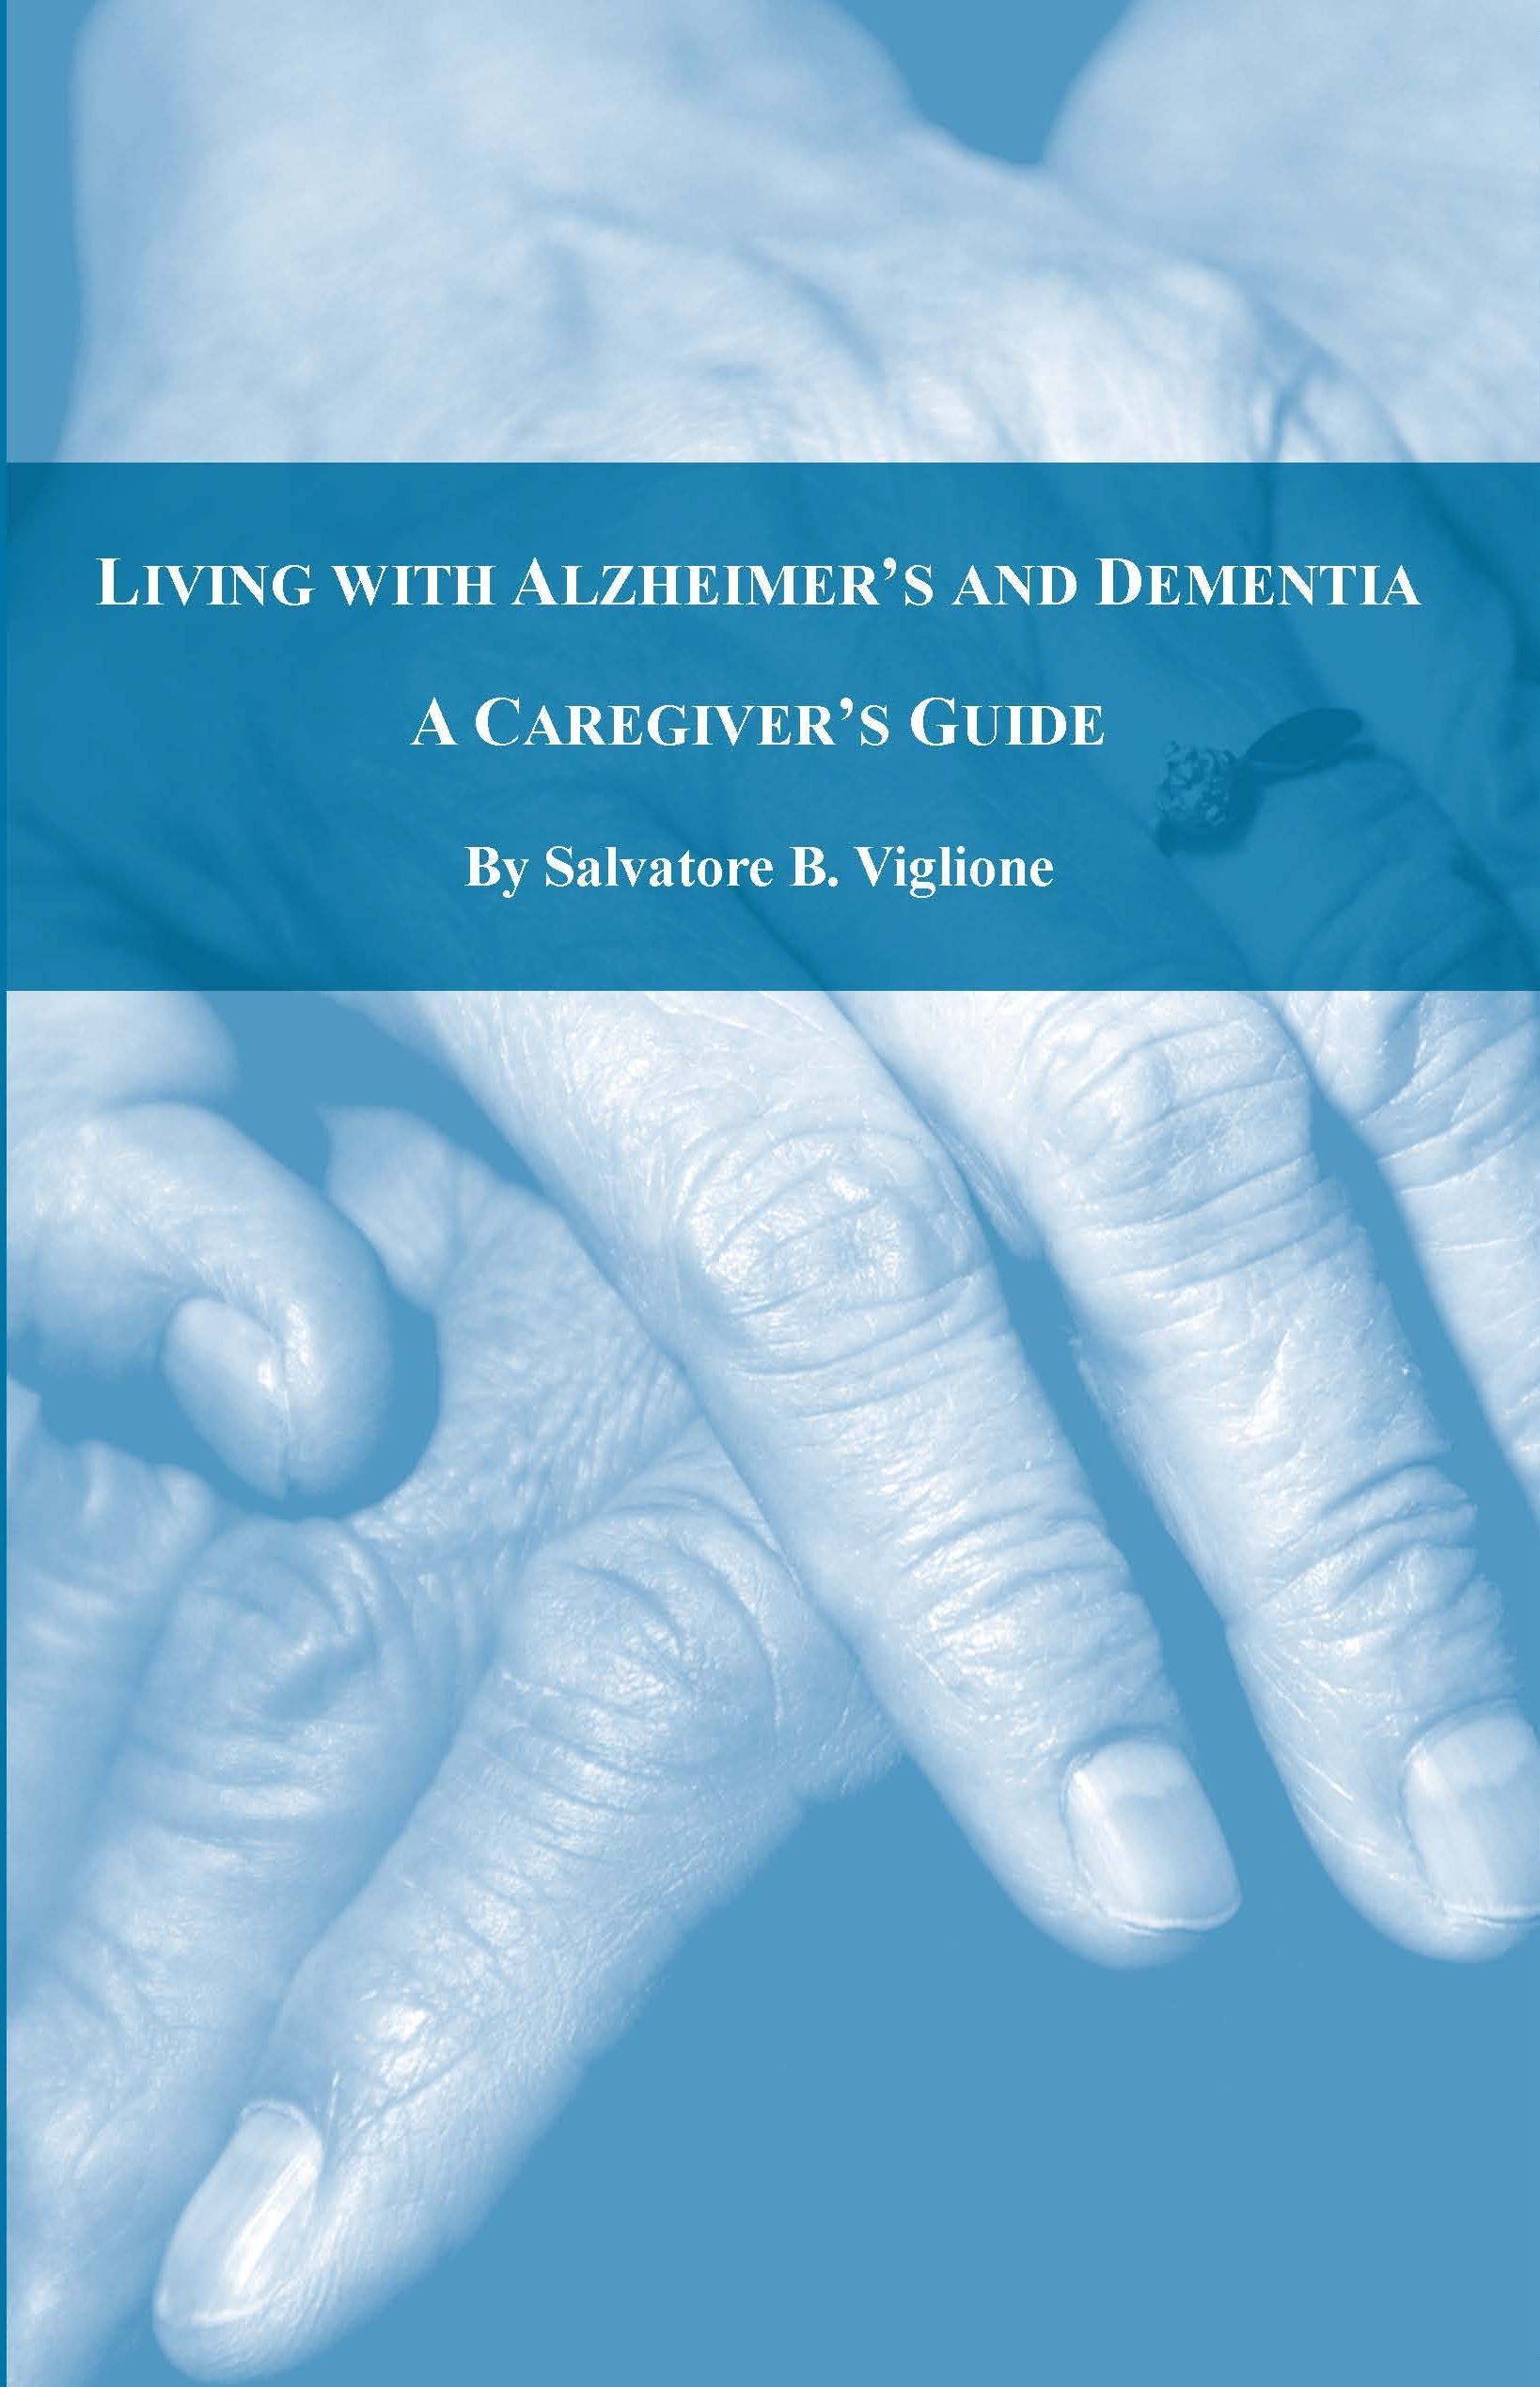 Living with Alzheimer's and Dementia: A Caregiver's Guide